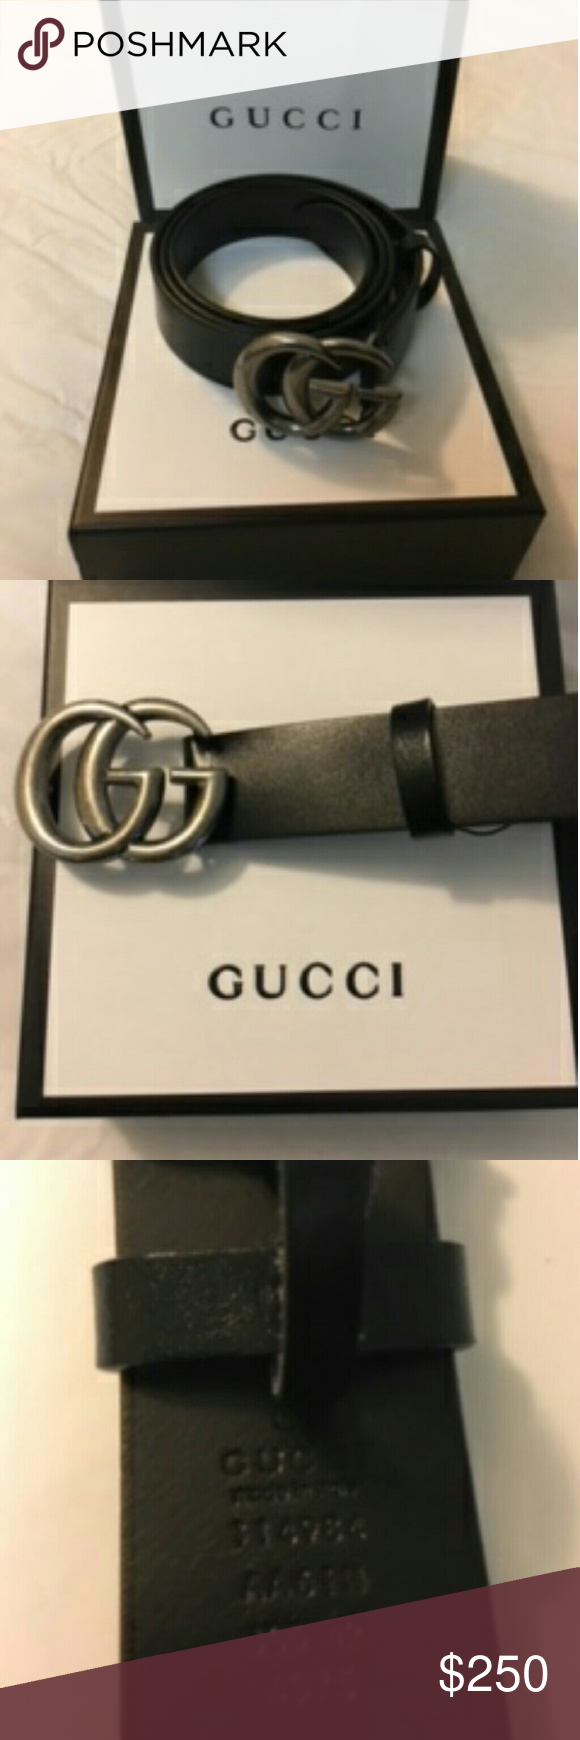 59aa9845dbde GUCCI BELT COME'S WITH ORIGINAL BOX, DUST BAG, AUTHENTIC CARD, SHOPPING BAG.  GUCCI Accessories Belts